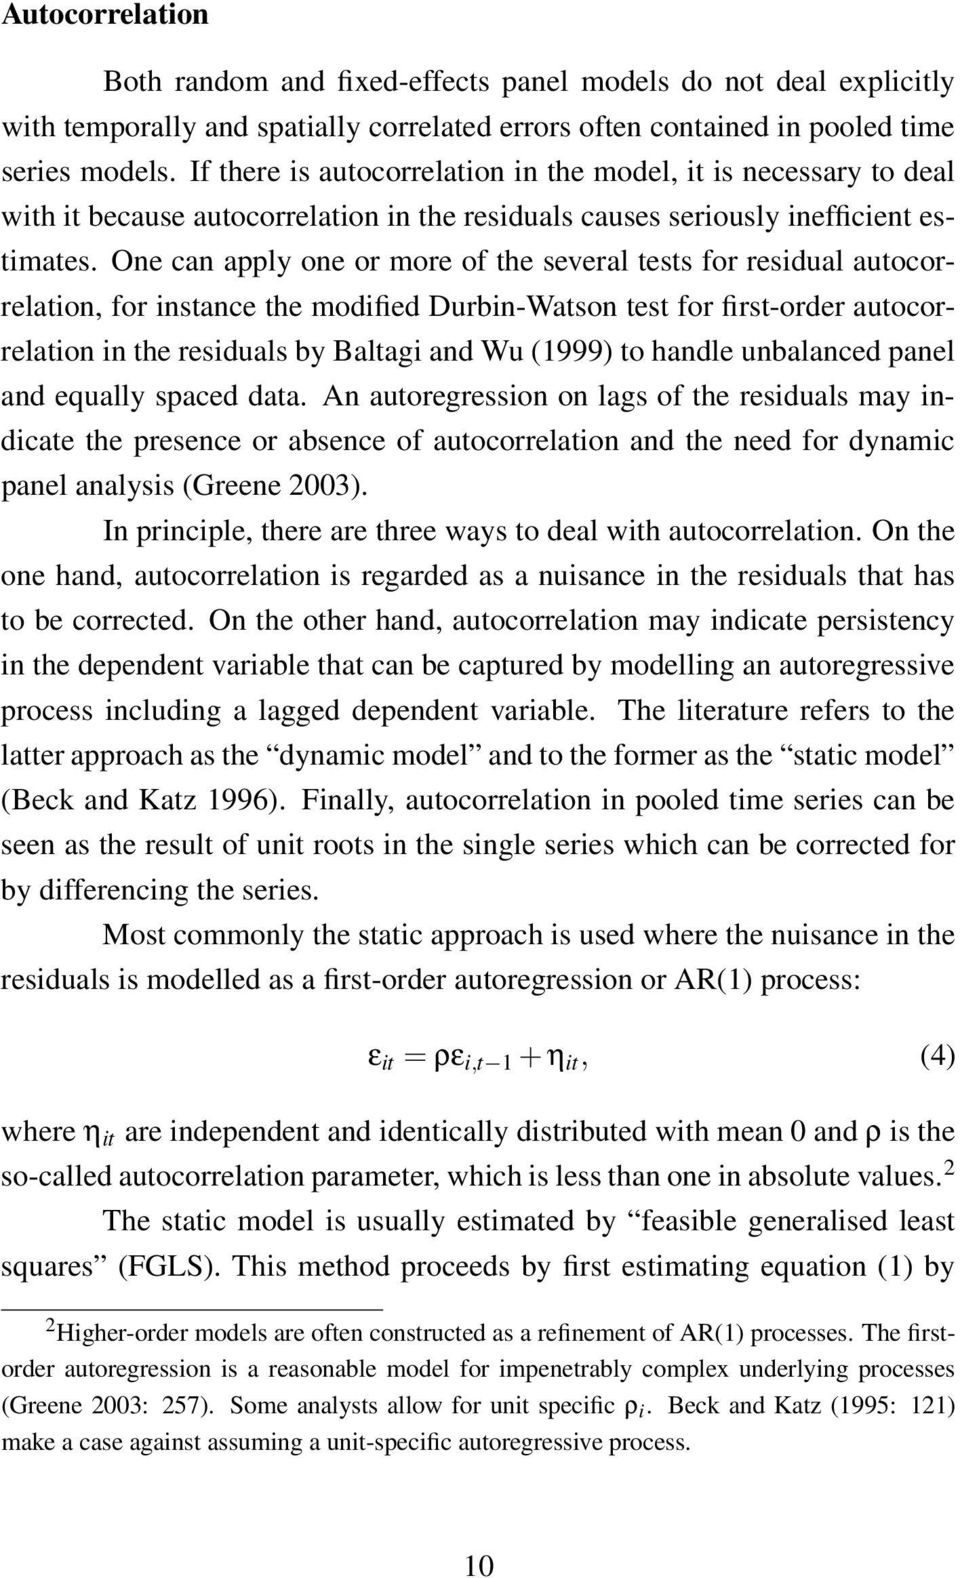 One can apply one or more of the several tests for residual autocorrelation, for instance the modified Durbin-Watson test for first-order autocorrelation in the residuals by Baltagi and Wu (1999) to